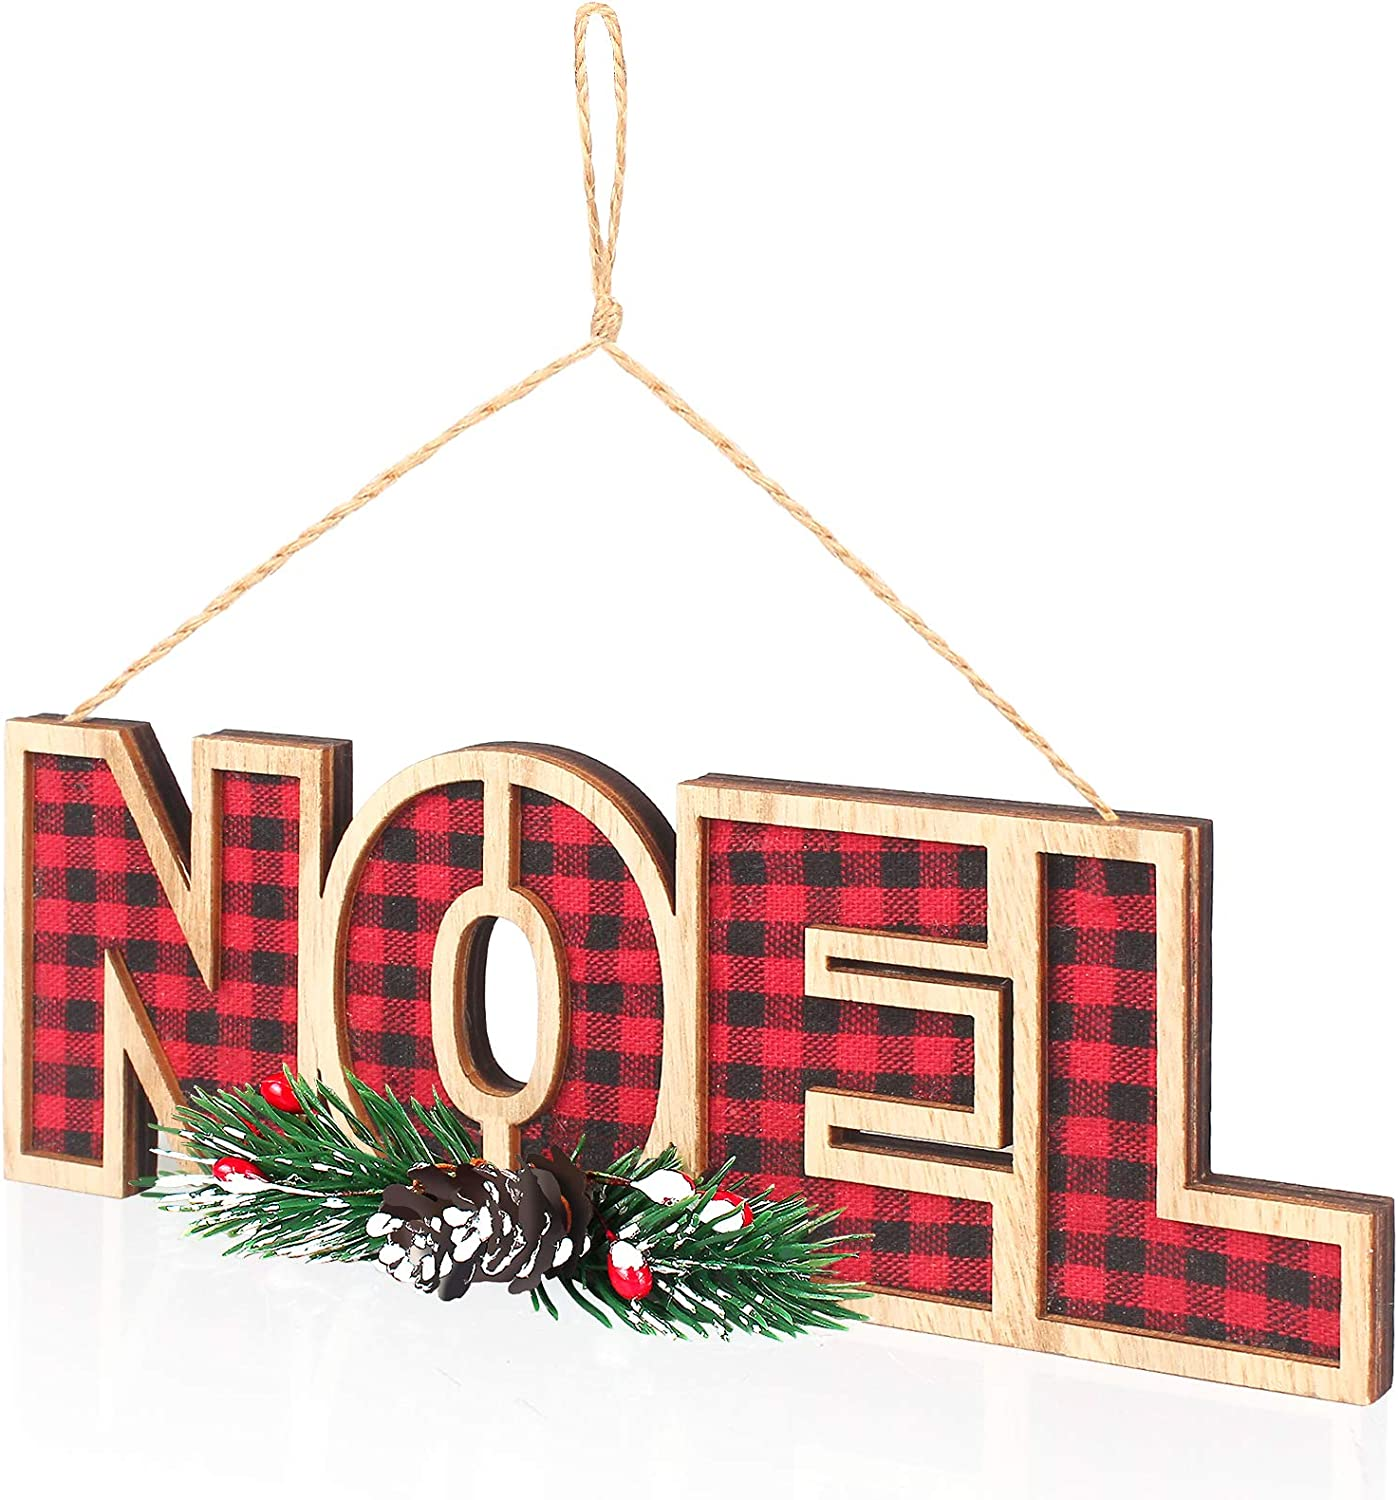 WizPower Hanging Sign, Noel Decoration Plaid Wooden Xmas Ornament Décor for Door Wall Home Kitchen Tree